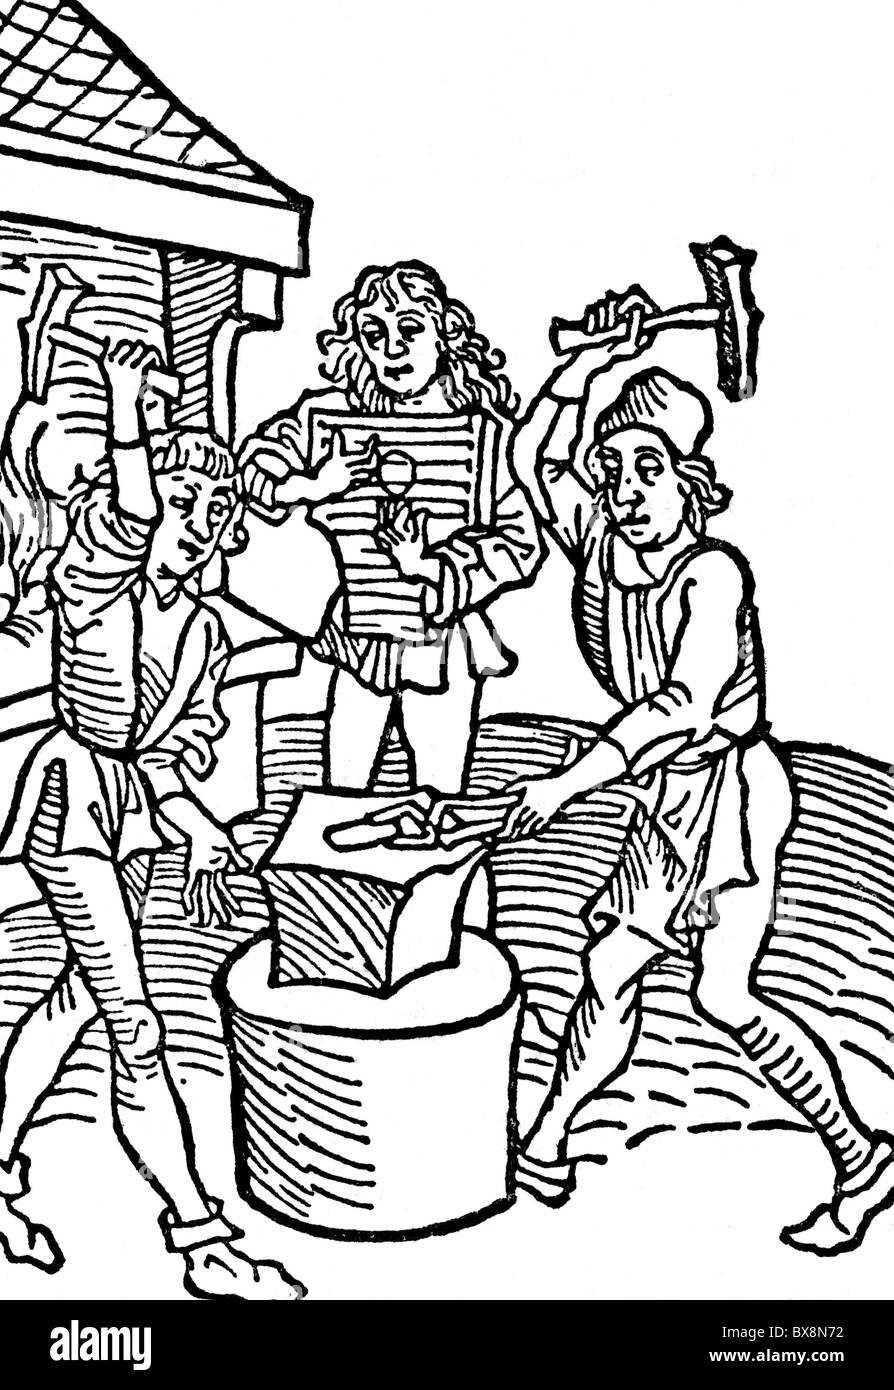 people, professions, smith, two smiths at double beat to the bar of a harp, Germany, 15th century, hammer, hammering, - Stock Image